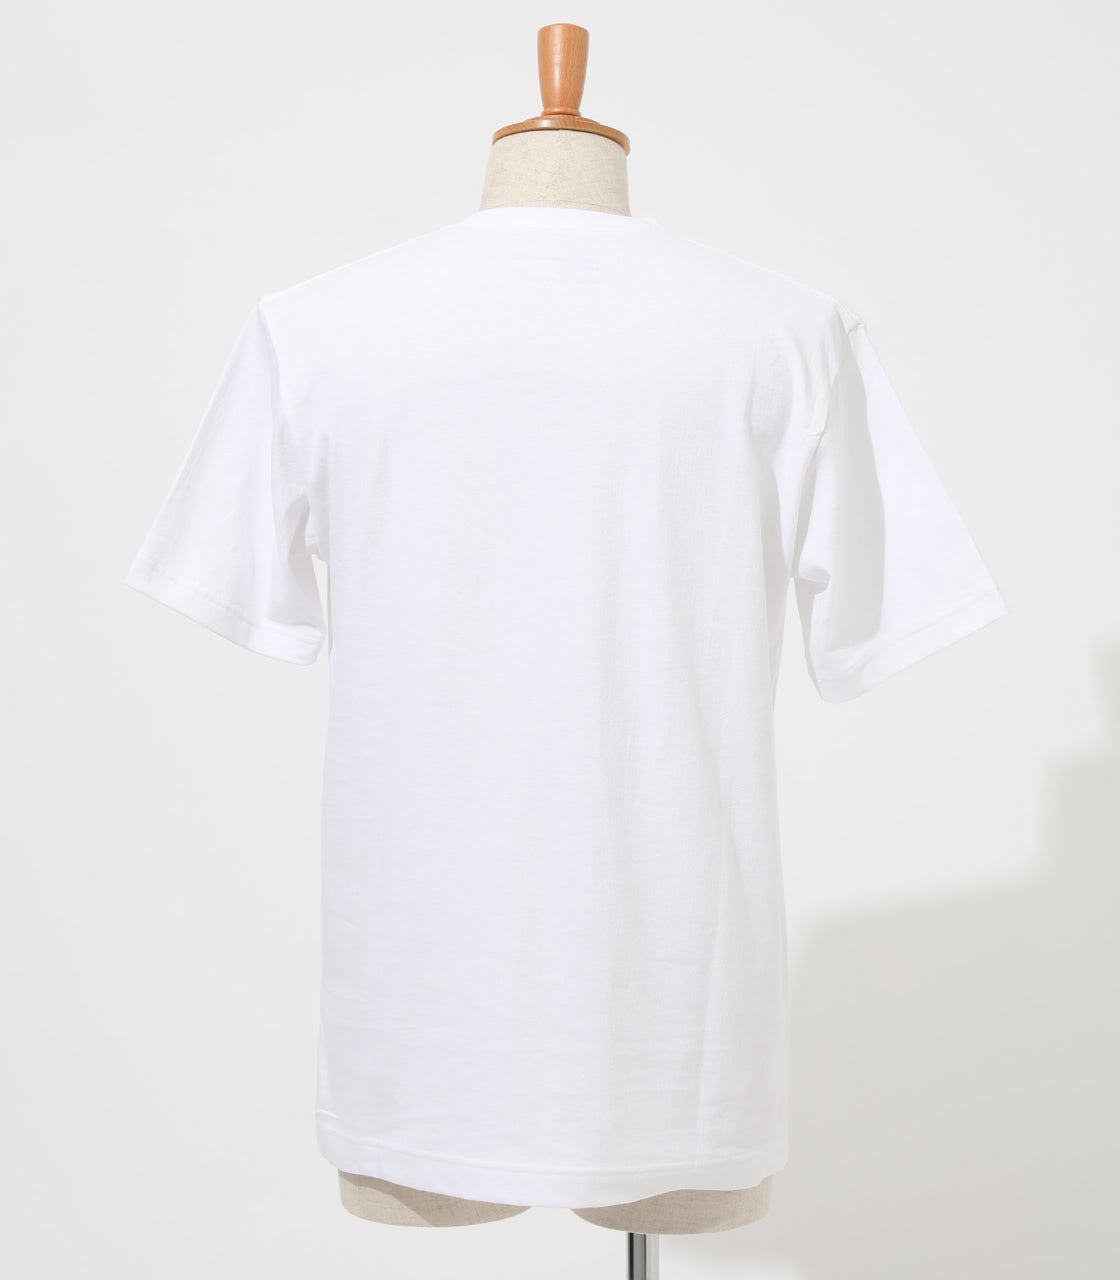 HEAVY WEIGHT Vネック T-SHIRT 詳細画像 WHT 4